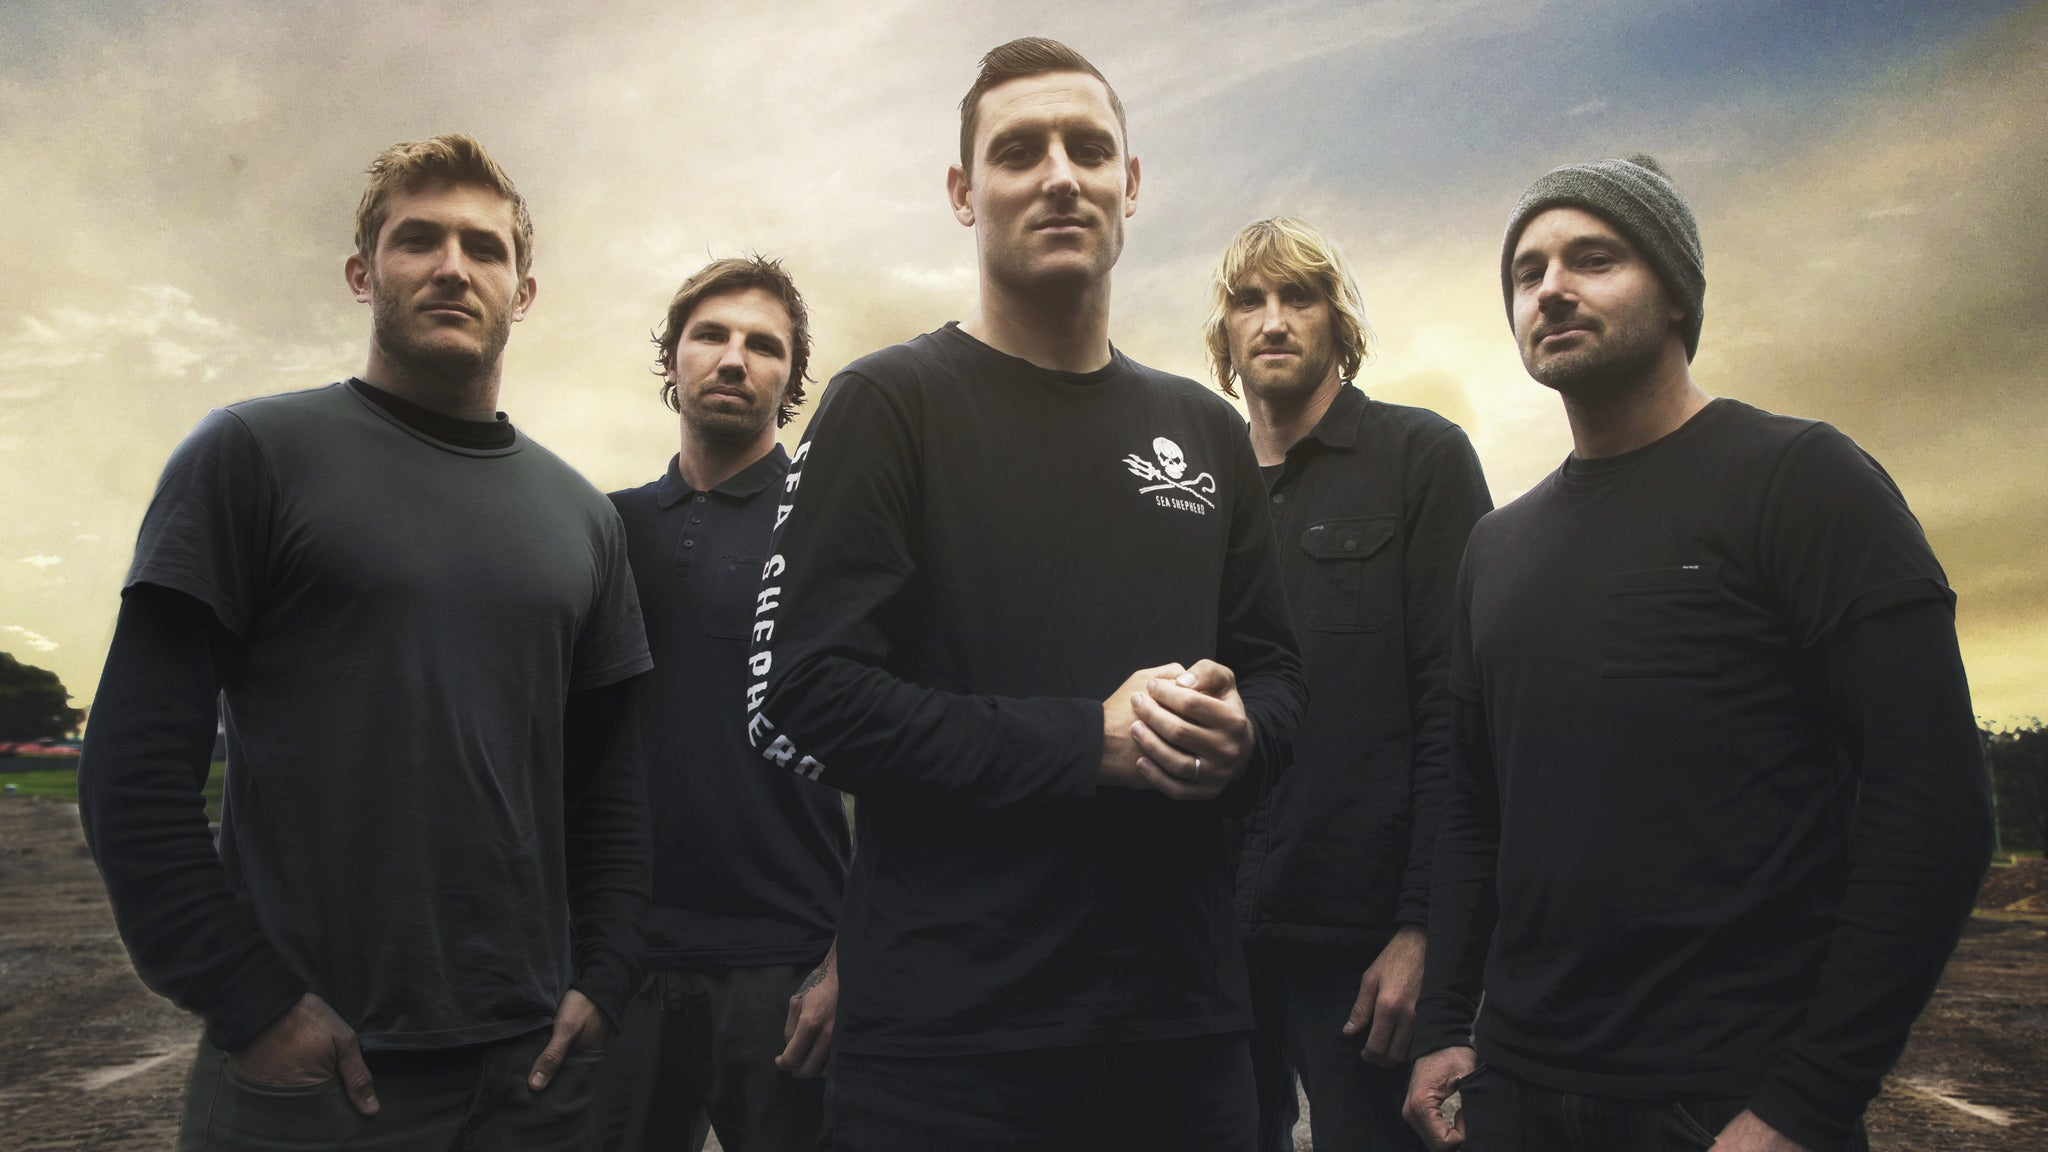 Parkway Drive - North American Tour 2017 at Chameleon Club